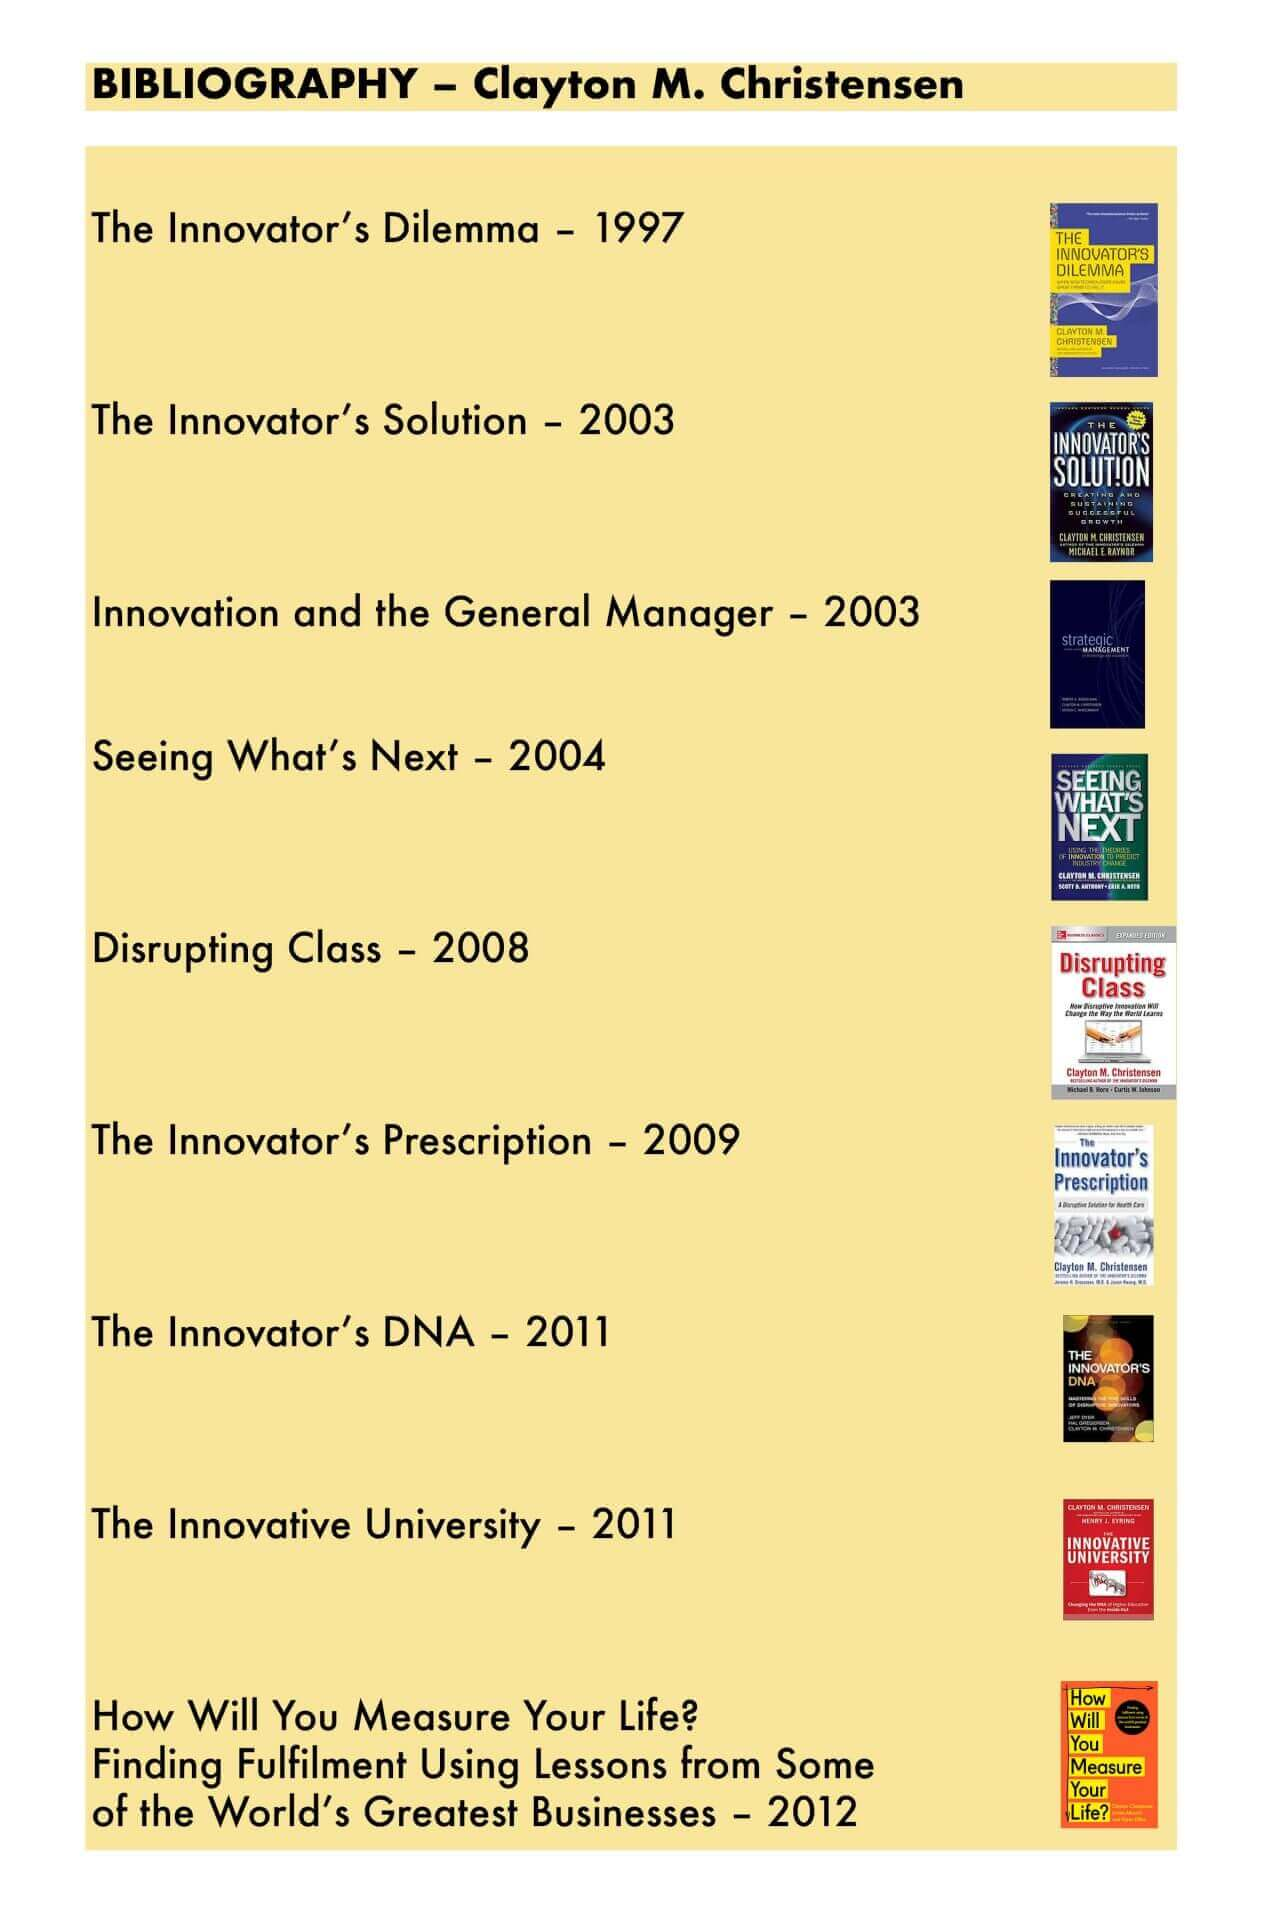 Bibliography of Clayton Christensen